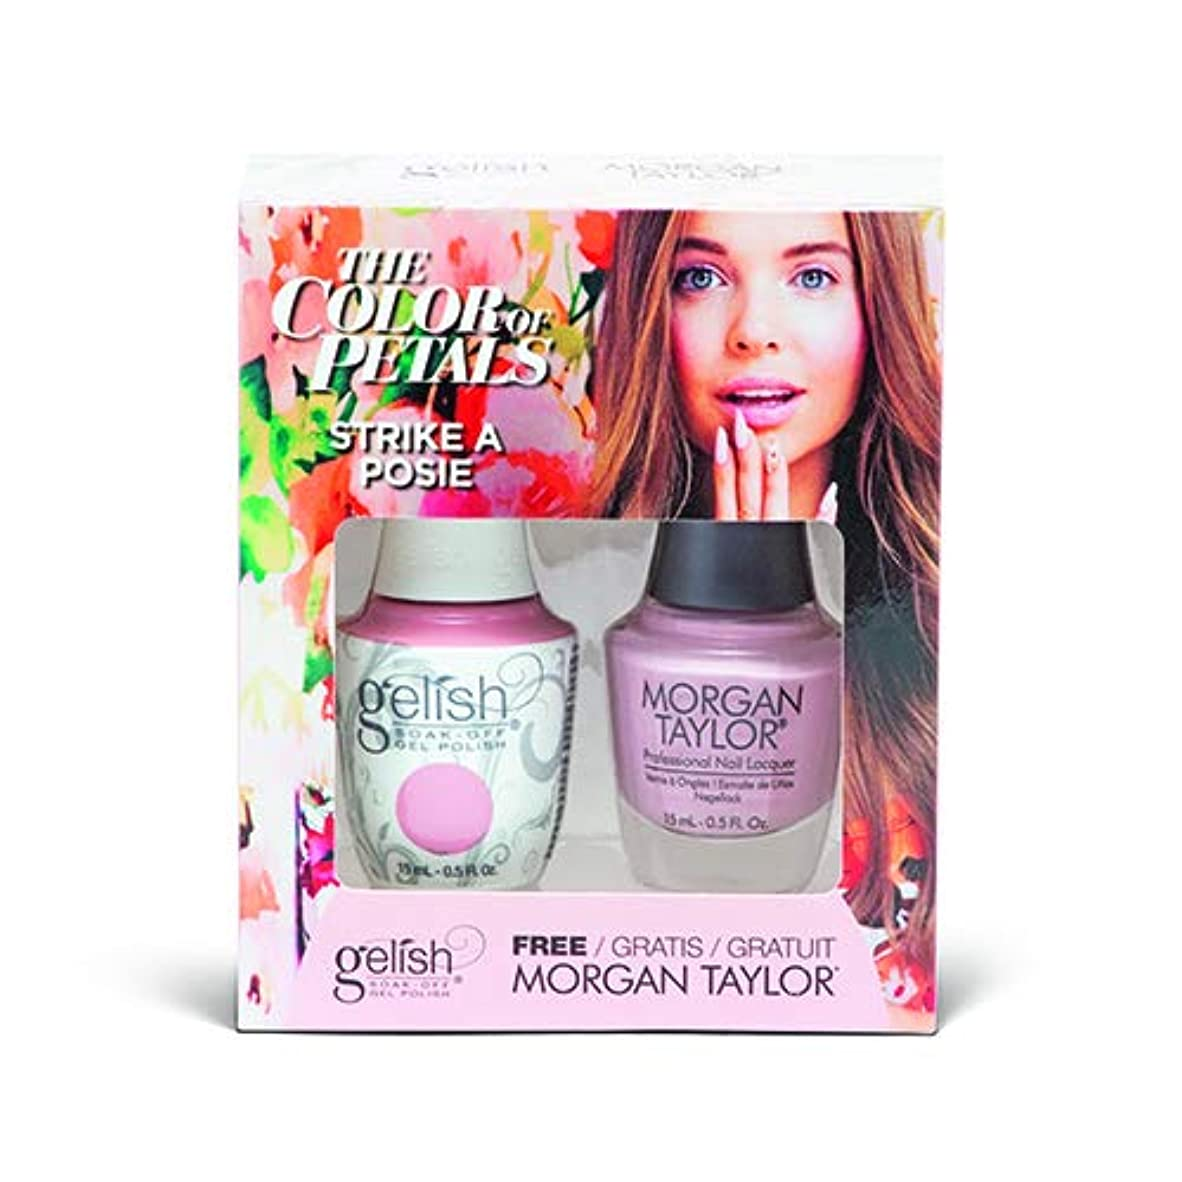 Harmony Gelish - Two Of A Kind - The Color Of Petals - Strike A Posie - 15 mL / 0.5 Oz